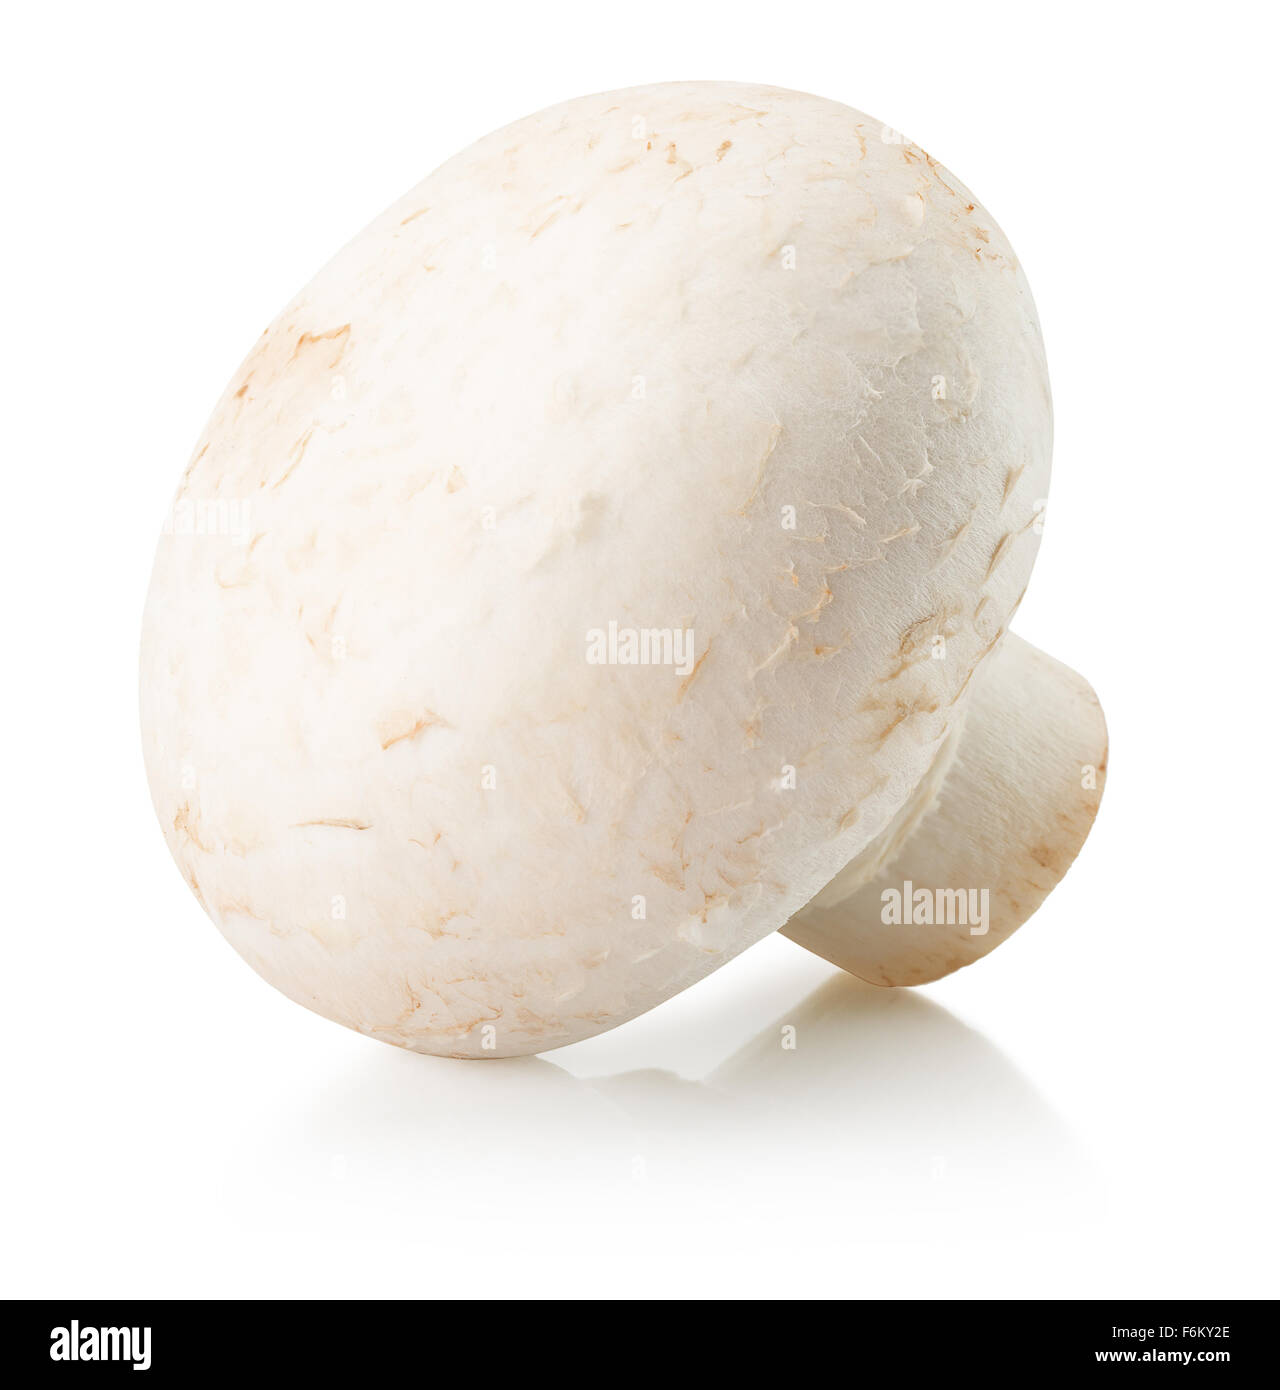 white mushroom isolated on the white background. - Stock Image